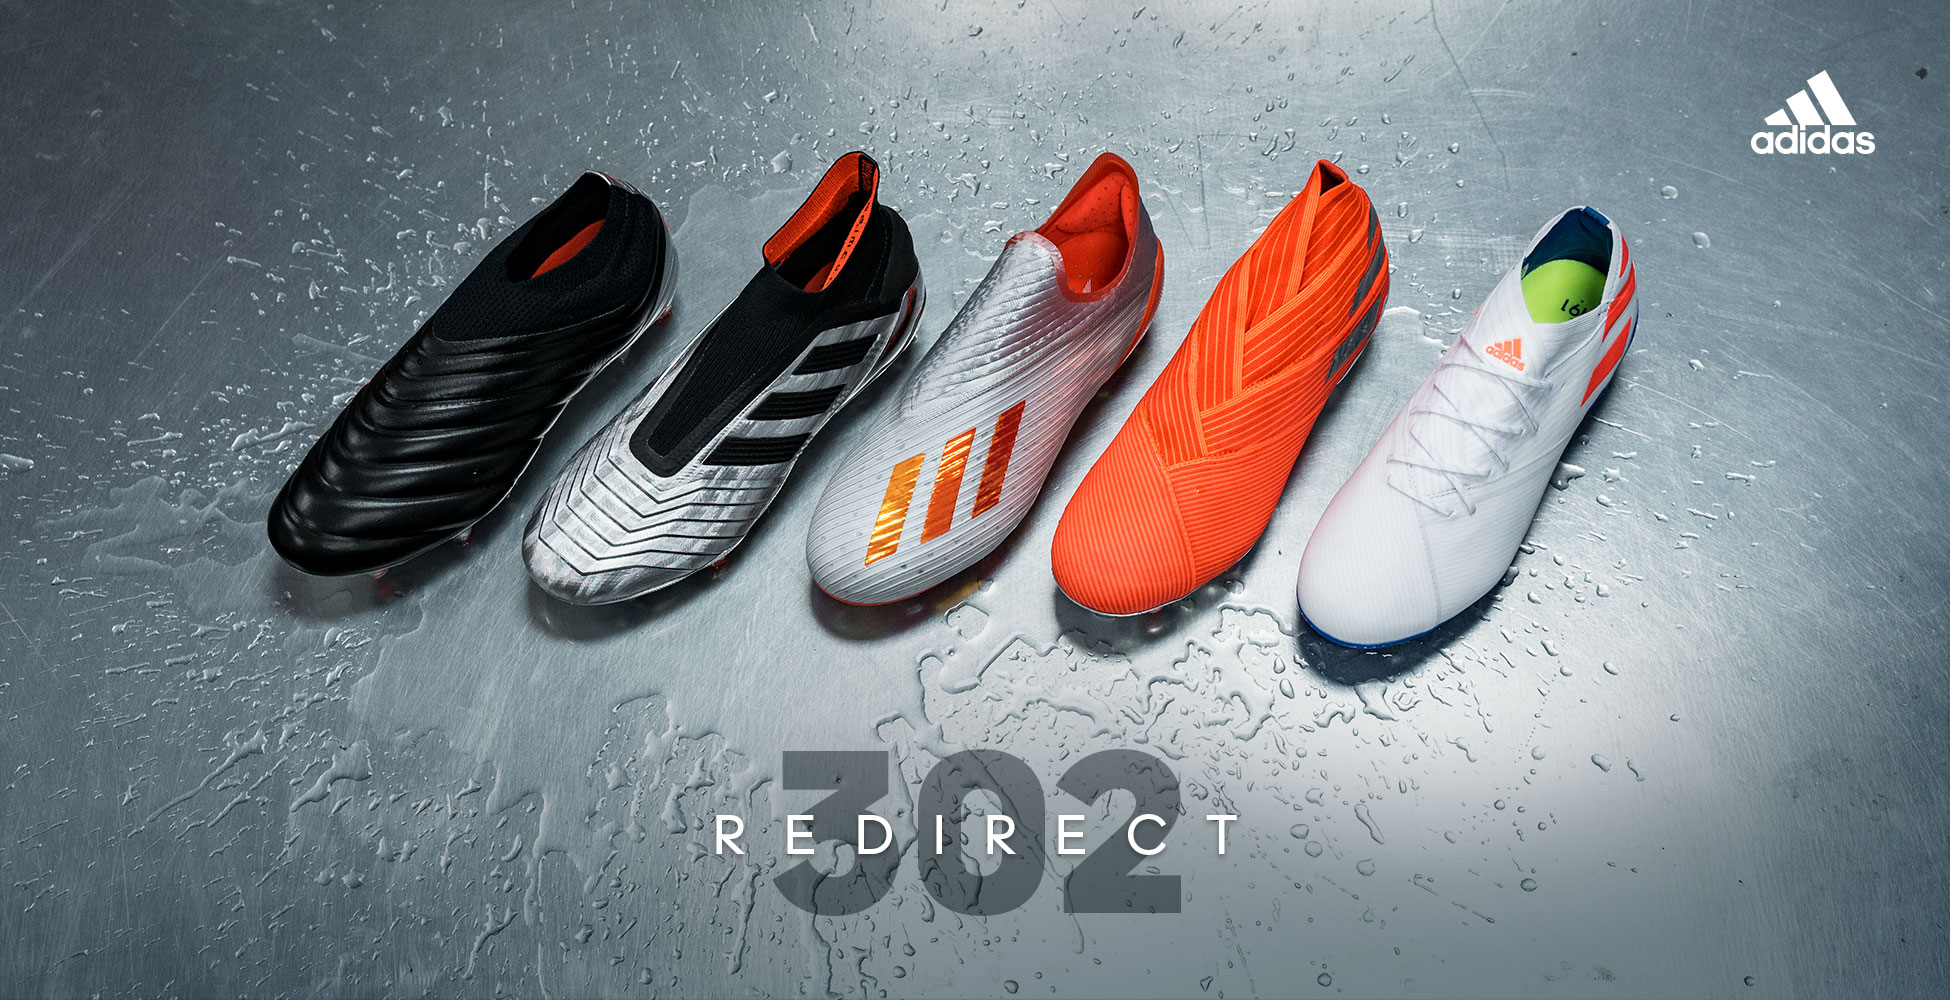 Adidas Football 302 Redirect Emotion Store Fútbol HbD2WEeIY9